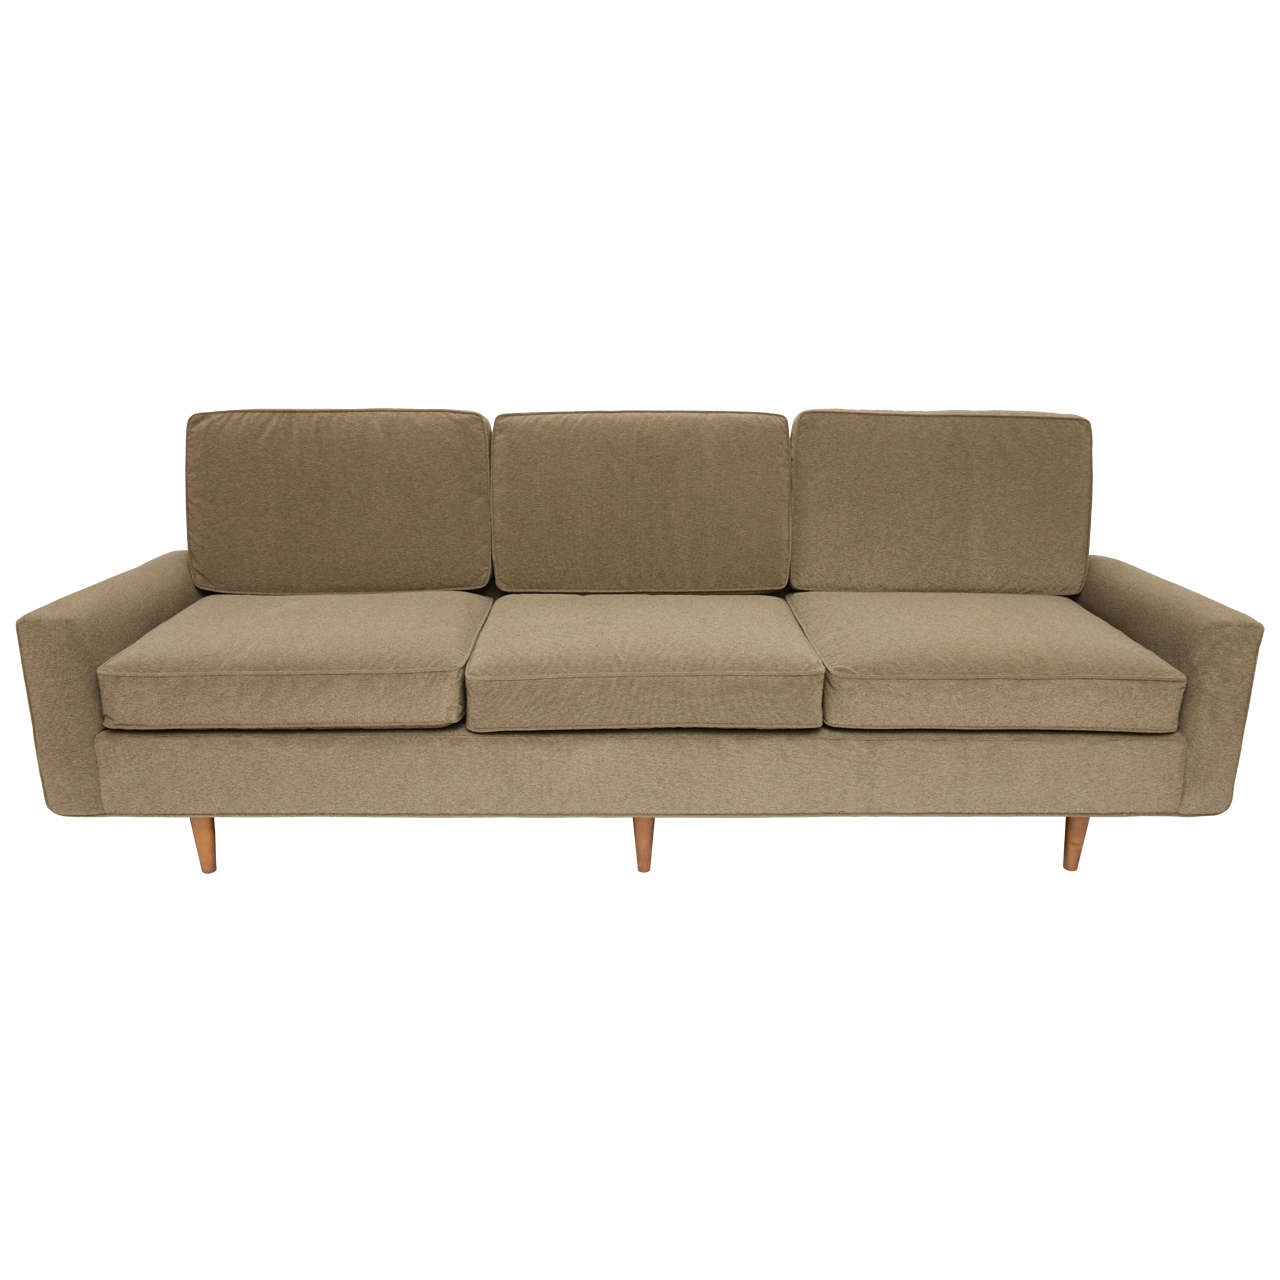 Classic Early Florence Knoll Three Seat Sofa At 1stdibs